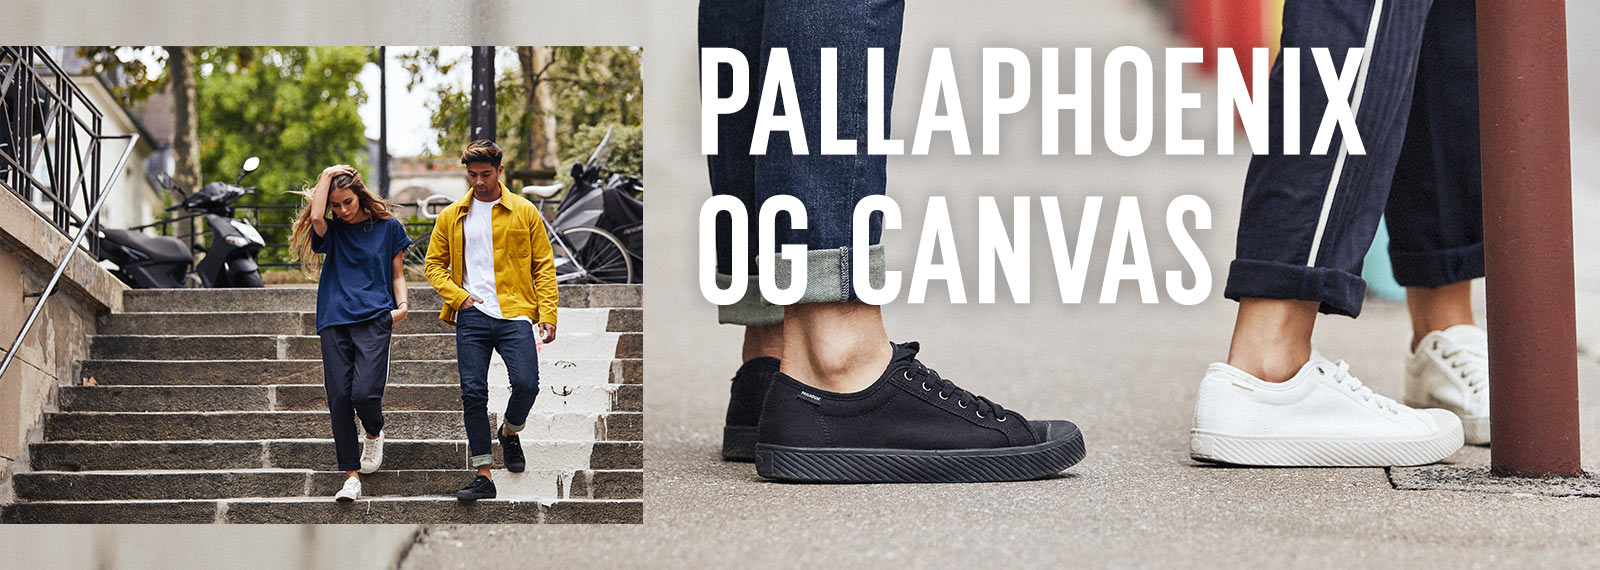 PALLAPHOENIX OG CANVAS